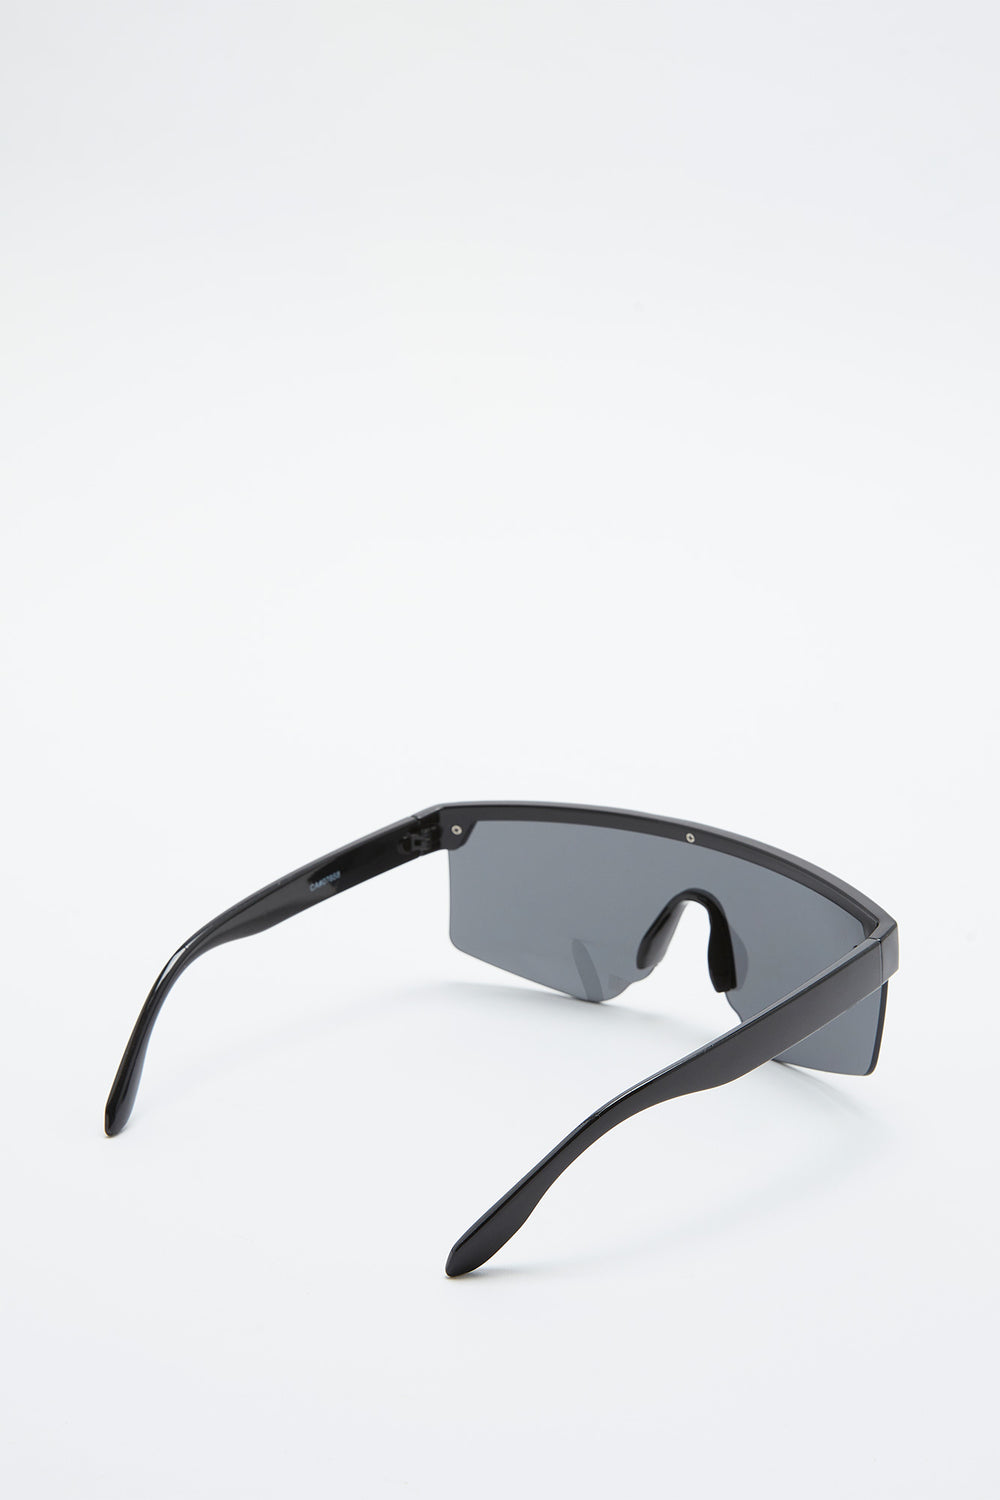 Smokey Oversized Sport Sunglasses Black